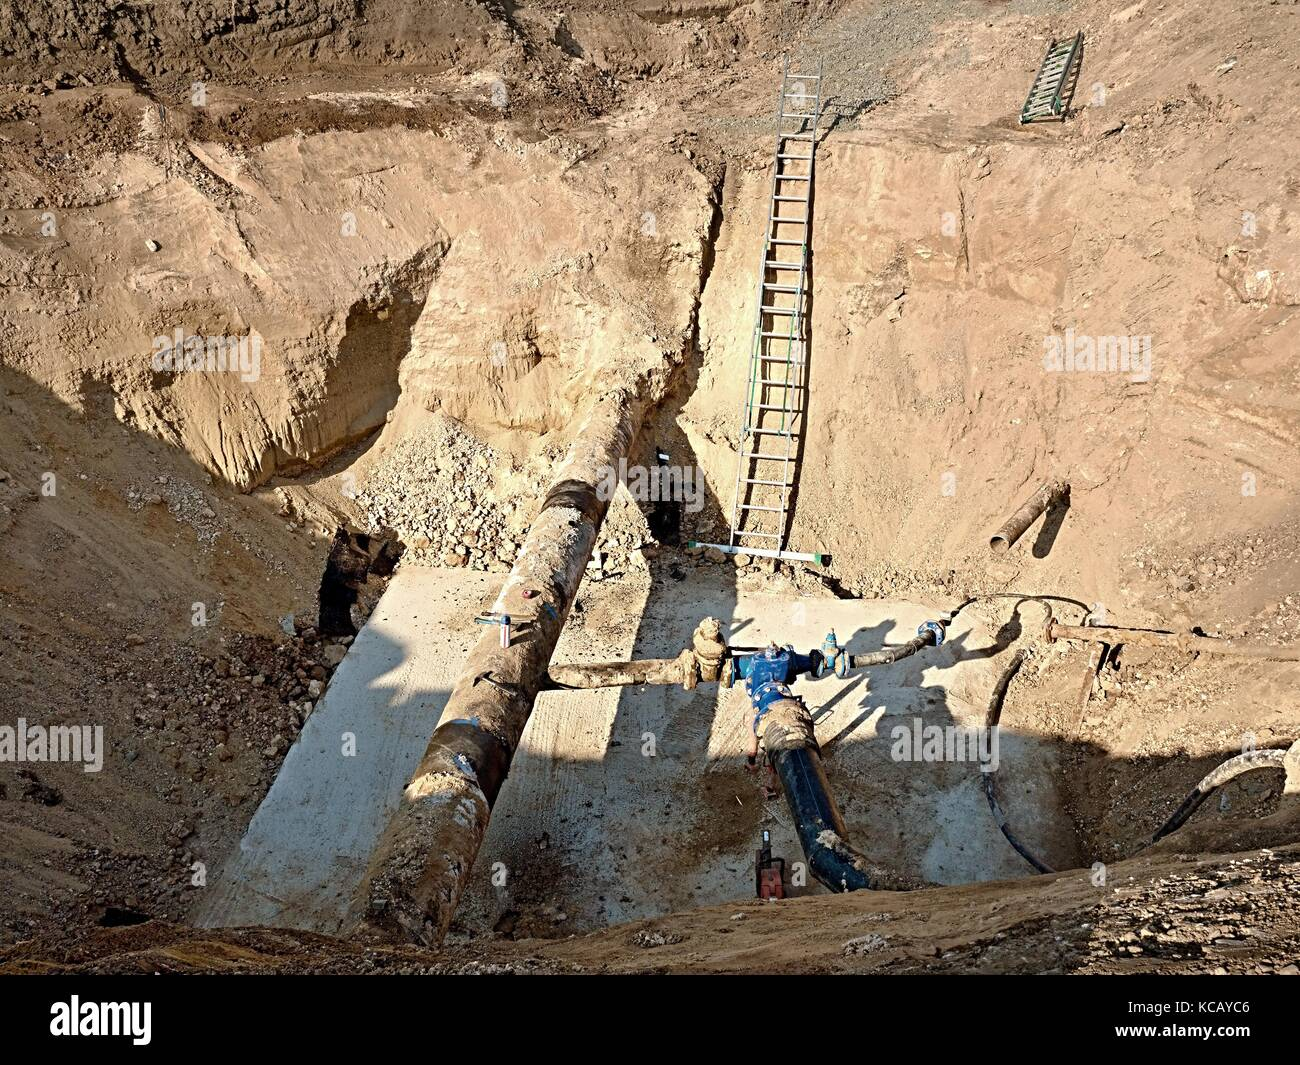 Excavation pit. Old 500mm drink water pipe with 150mm  cornering arm with gate valves, corroded  joining fittings. - Stock Image